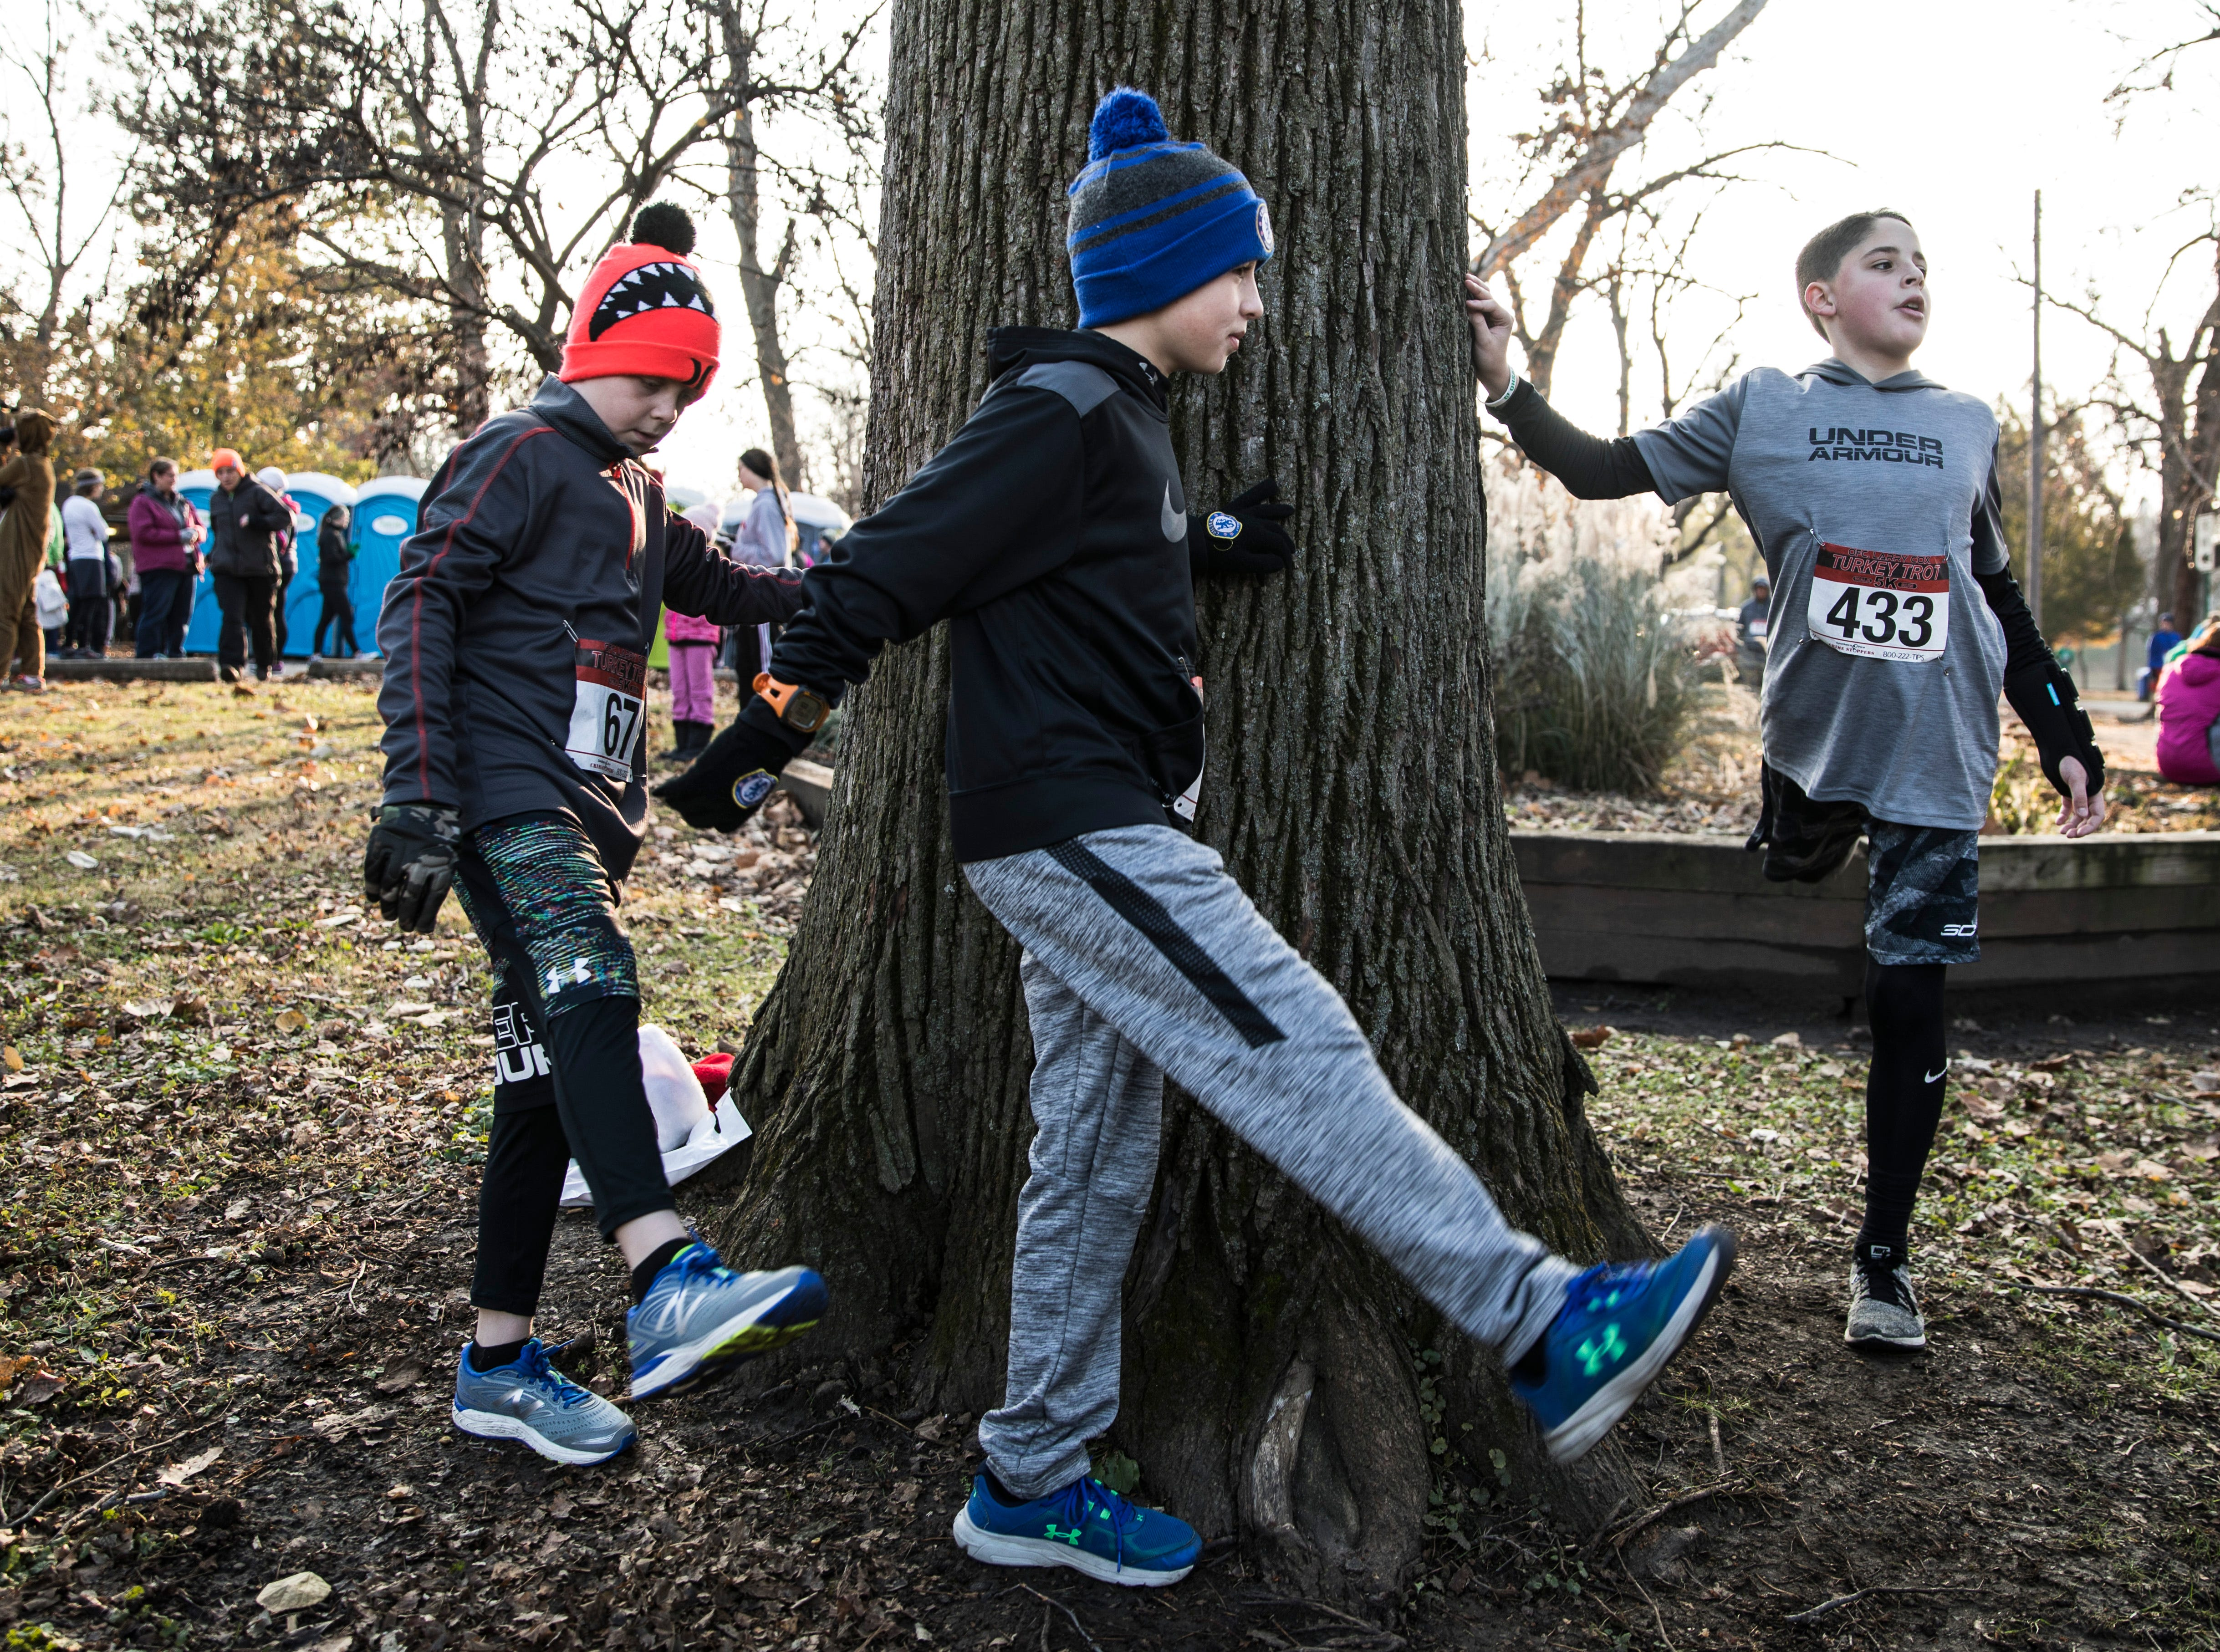 (L-R) Caleb Caplinger, Jaiden Hines, and Zeke Schobelock stretch before they run in the 14th annual Larry Cox Turkey Trot in Yoctangee Park Thursday morning in Chillicothe, Ohio.